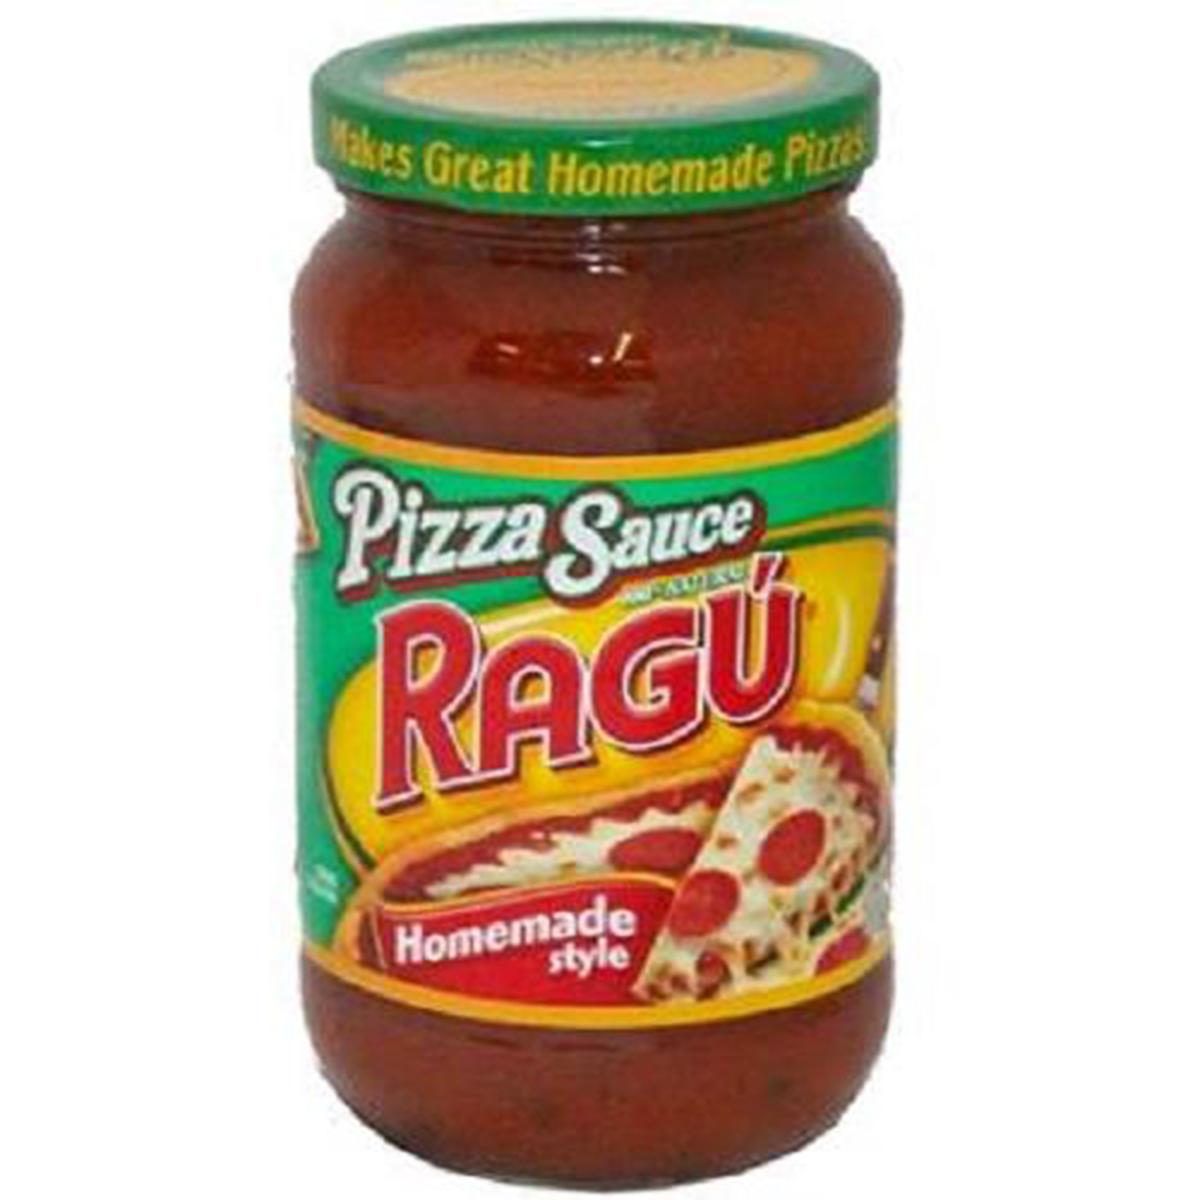 Product Of Ragu, Pizza Sauce - Homemade Style, Count 1 - Sauces / Grab Varieties & Flavors